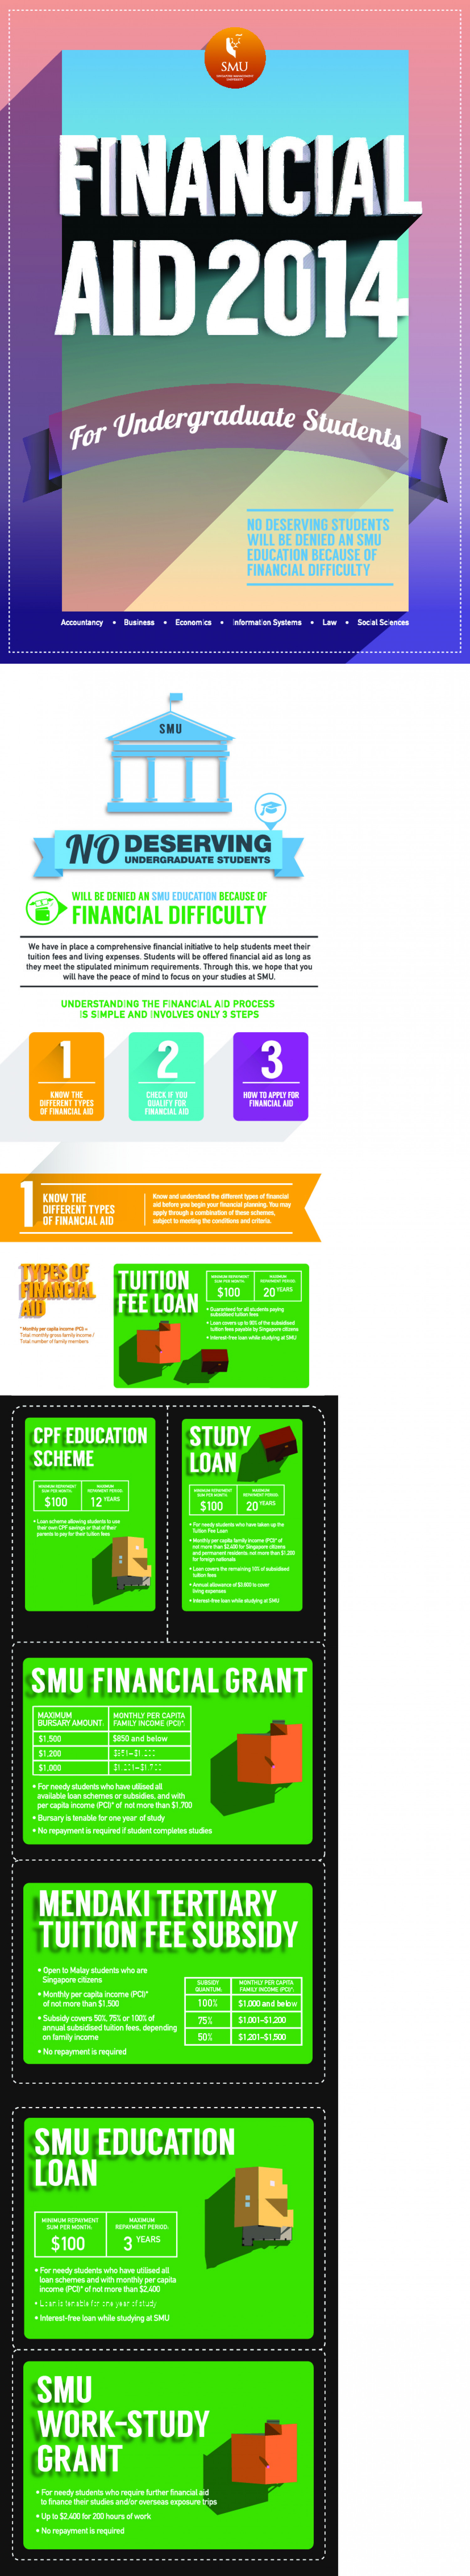 SMU Infographics: Financial Aid Guide 2014 Infographic